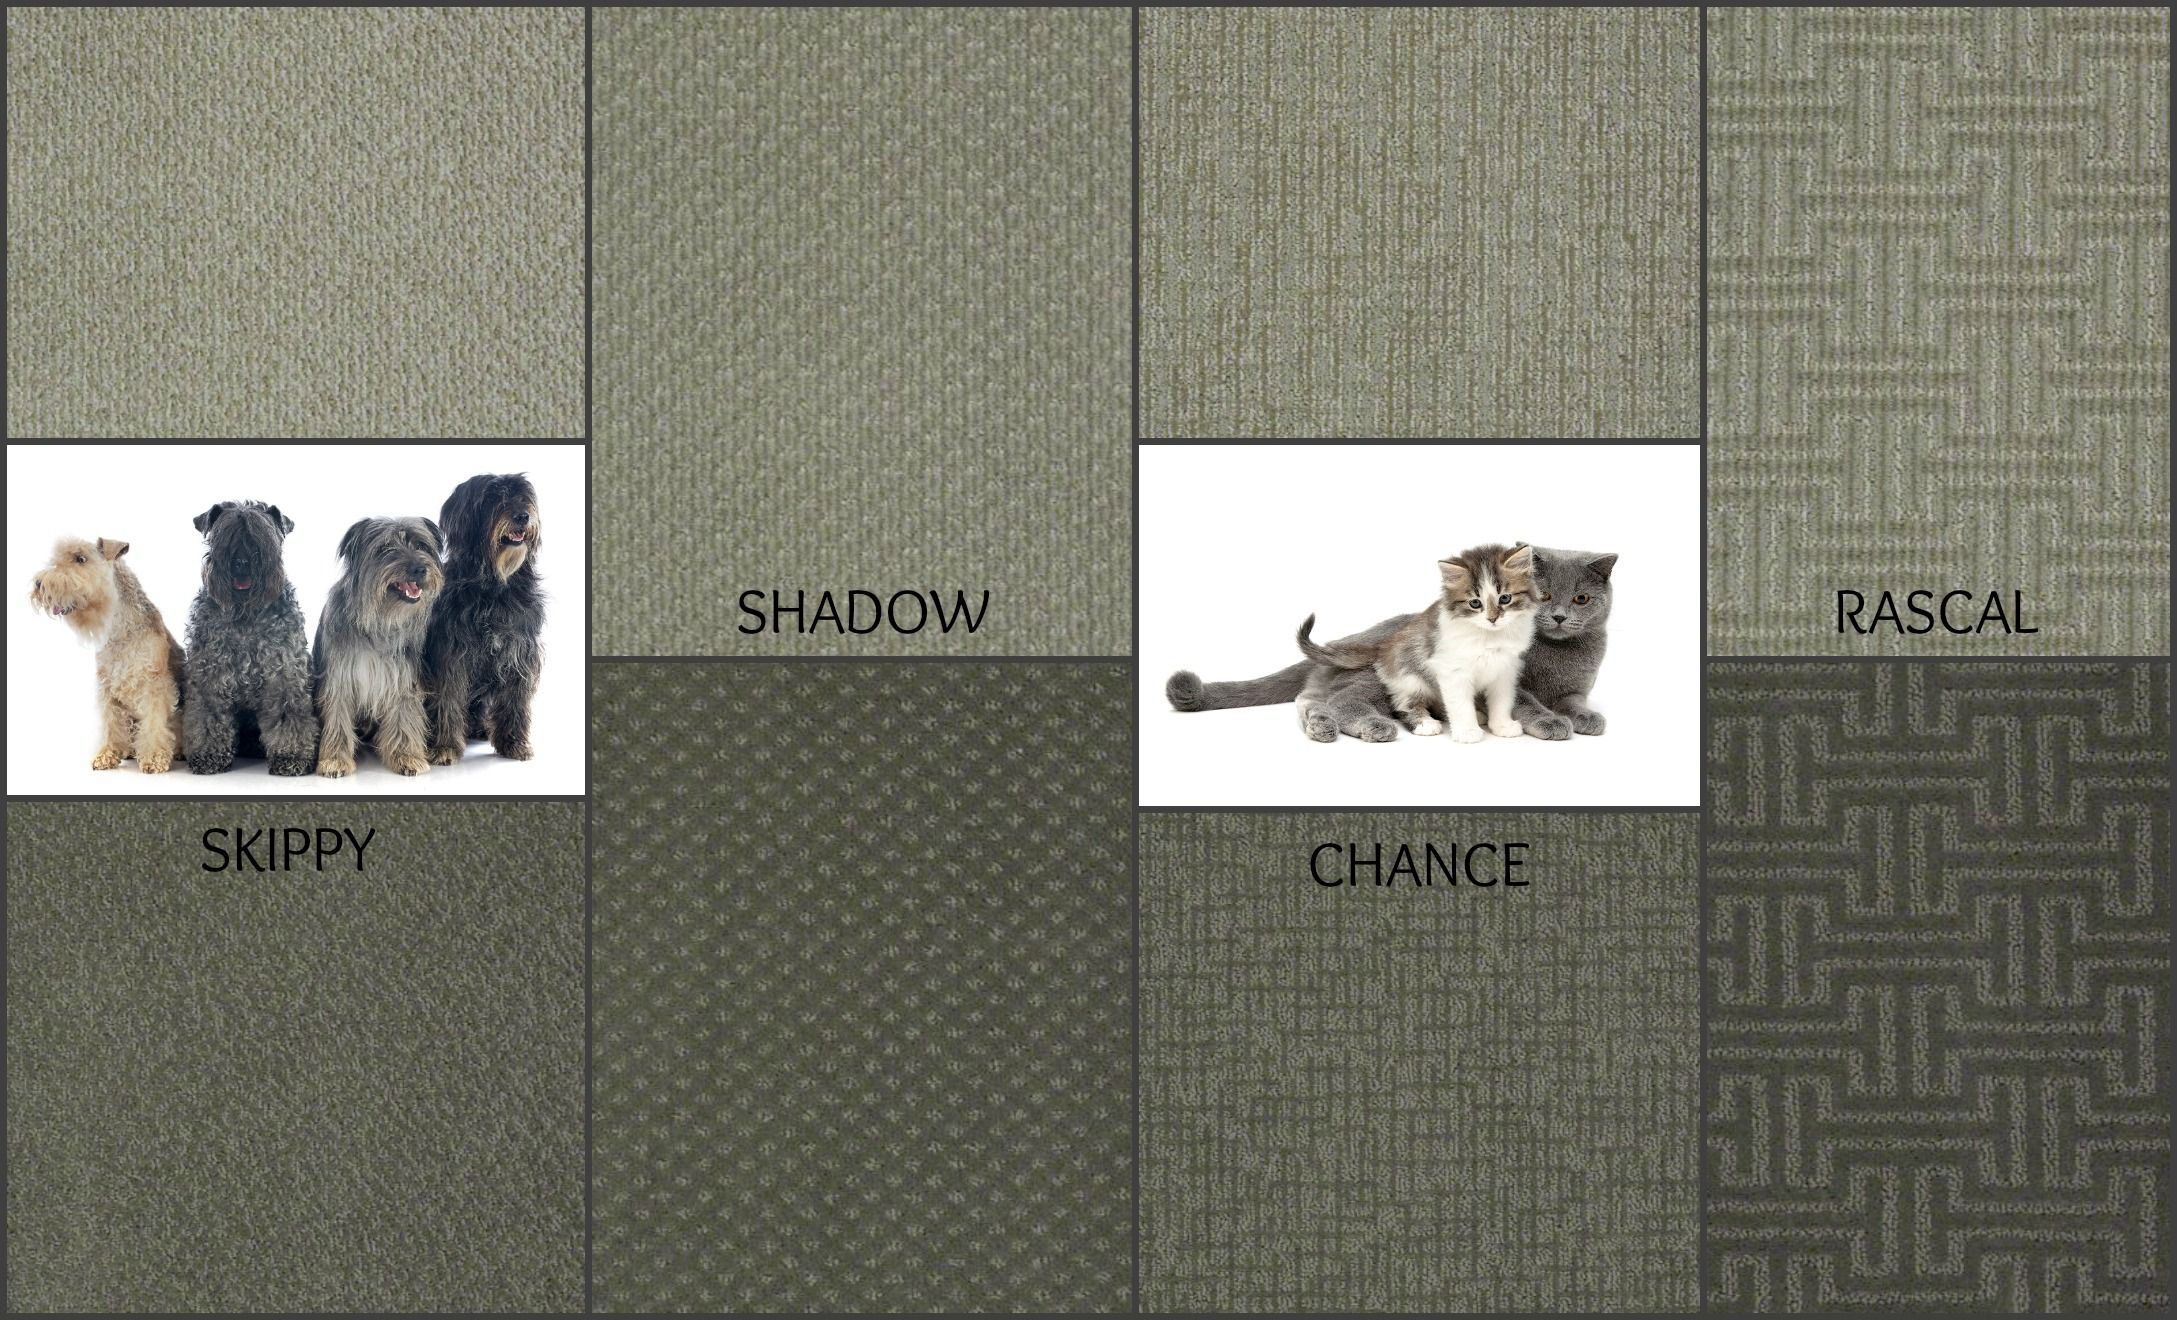 Skippy Shadow Chance And Rascal Carpet Featuring